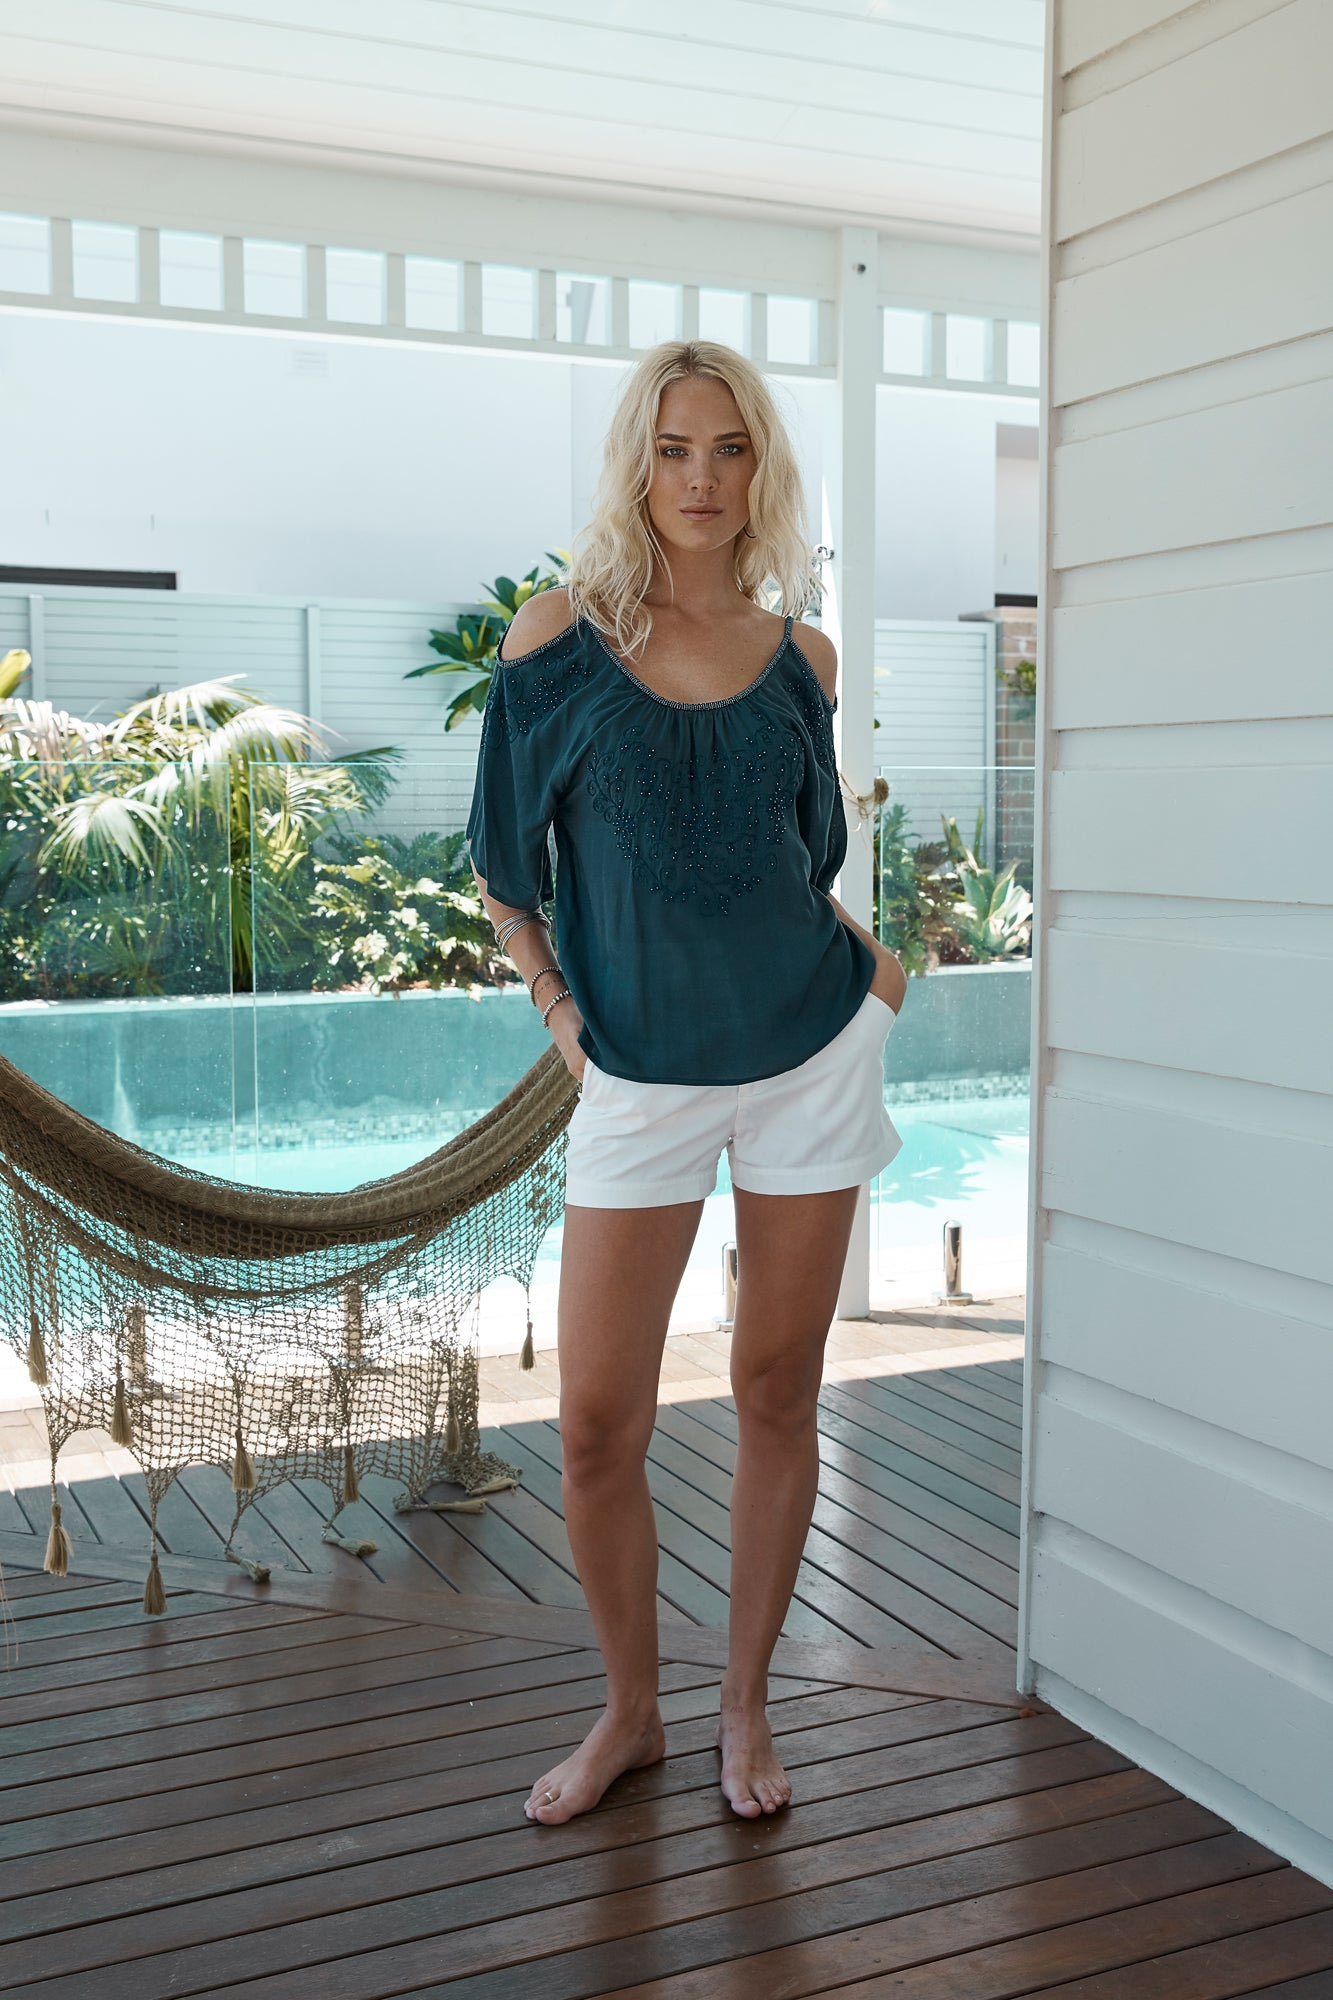 Barbados Fern Top from Island Jade- Indigo M/L